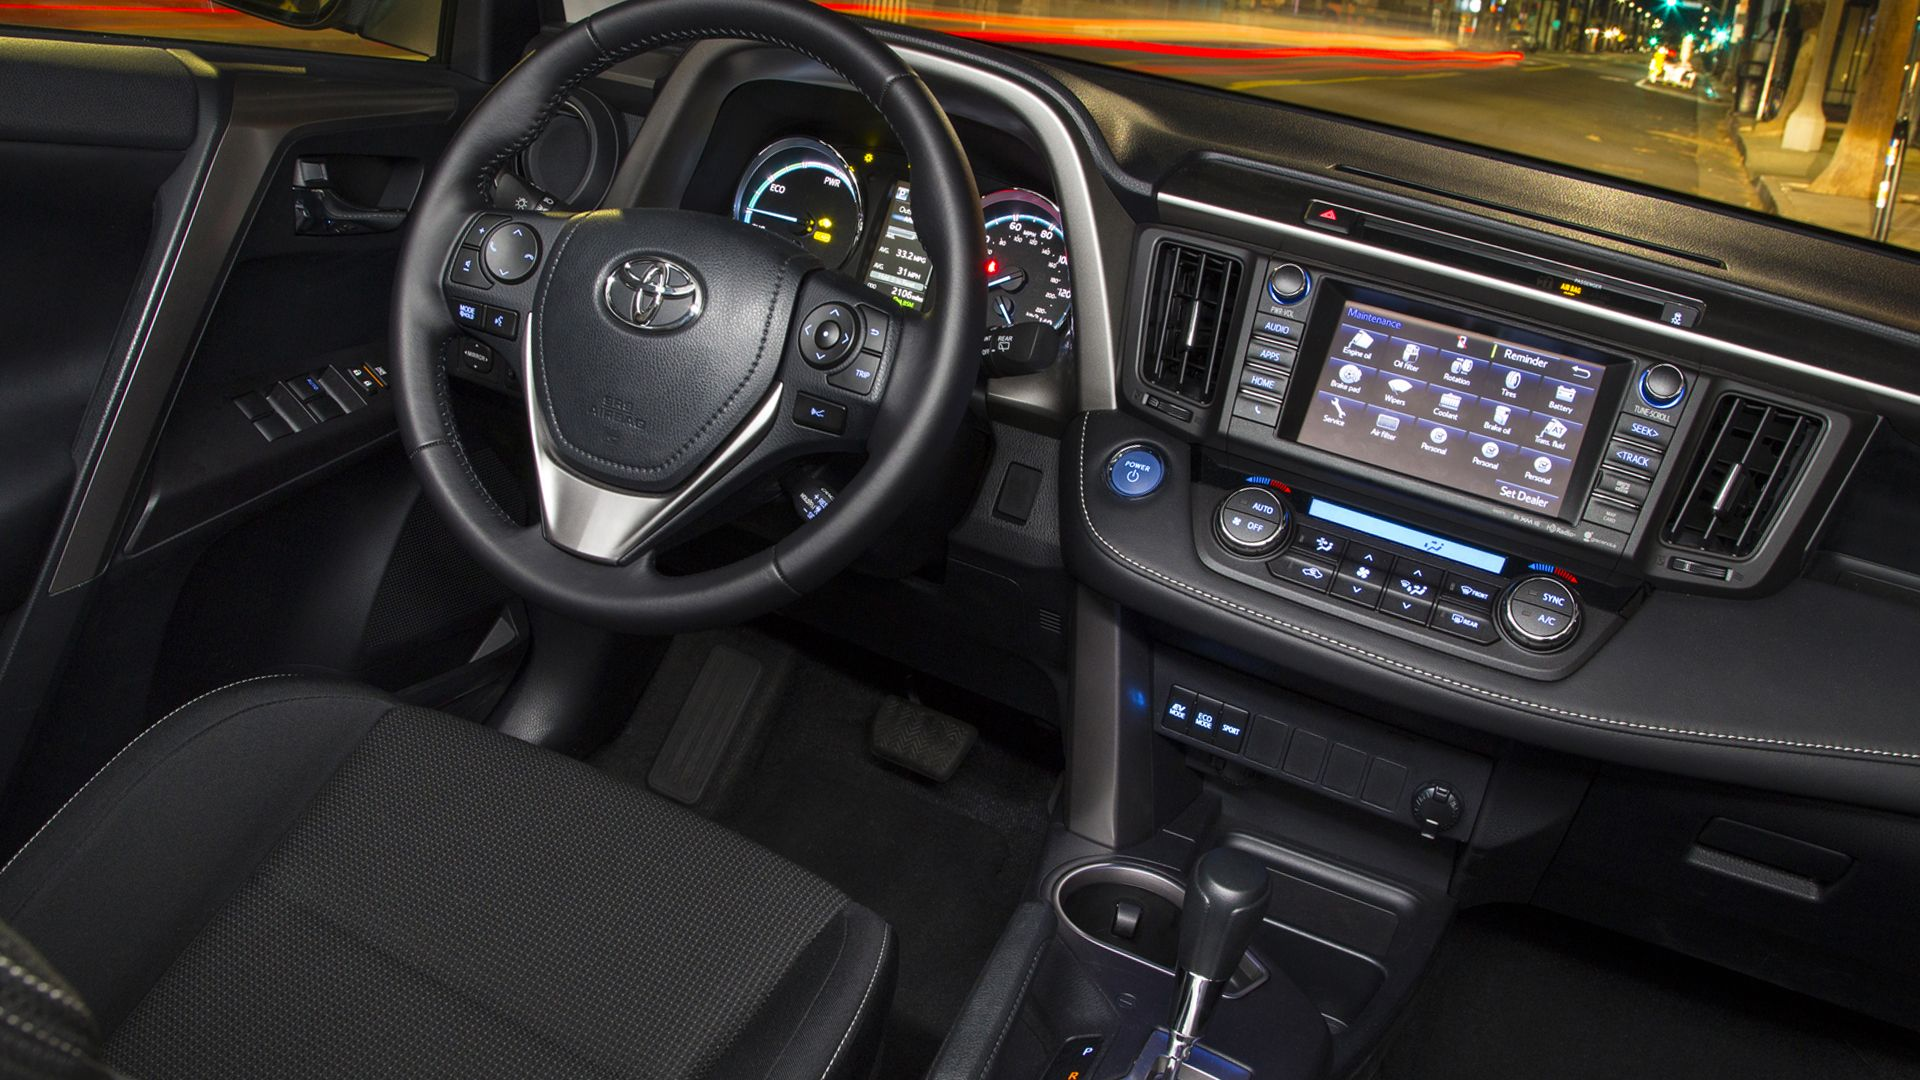 New 2019 toyota highlander hybrid interior design goals - Toyota highlander hybrid interior ...